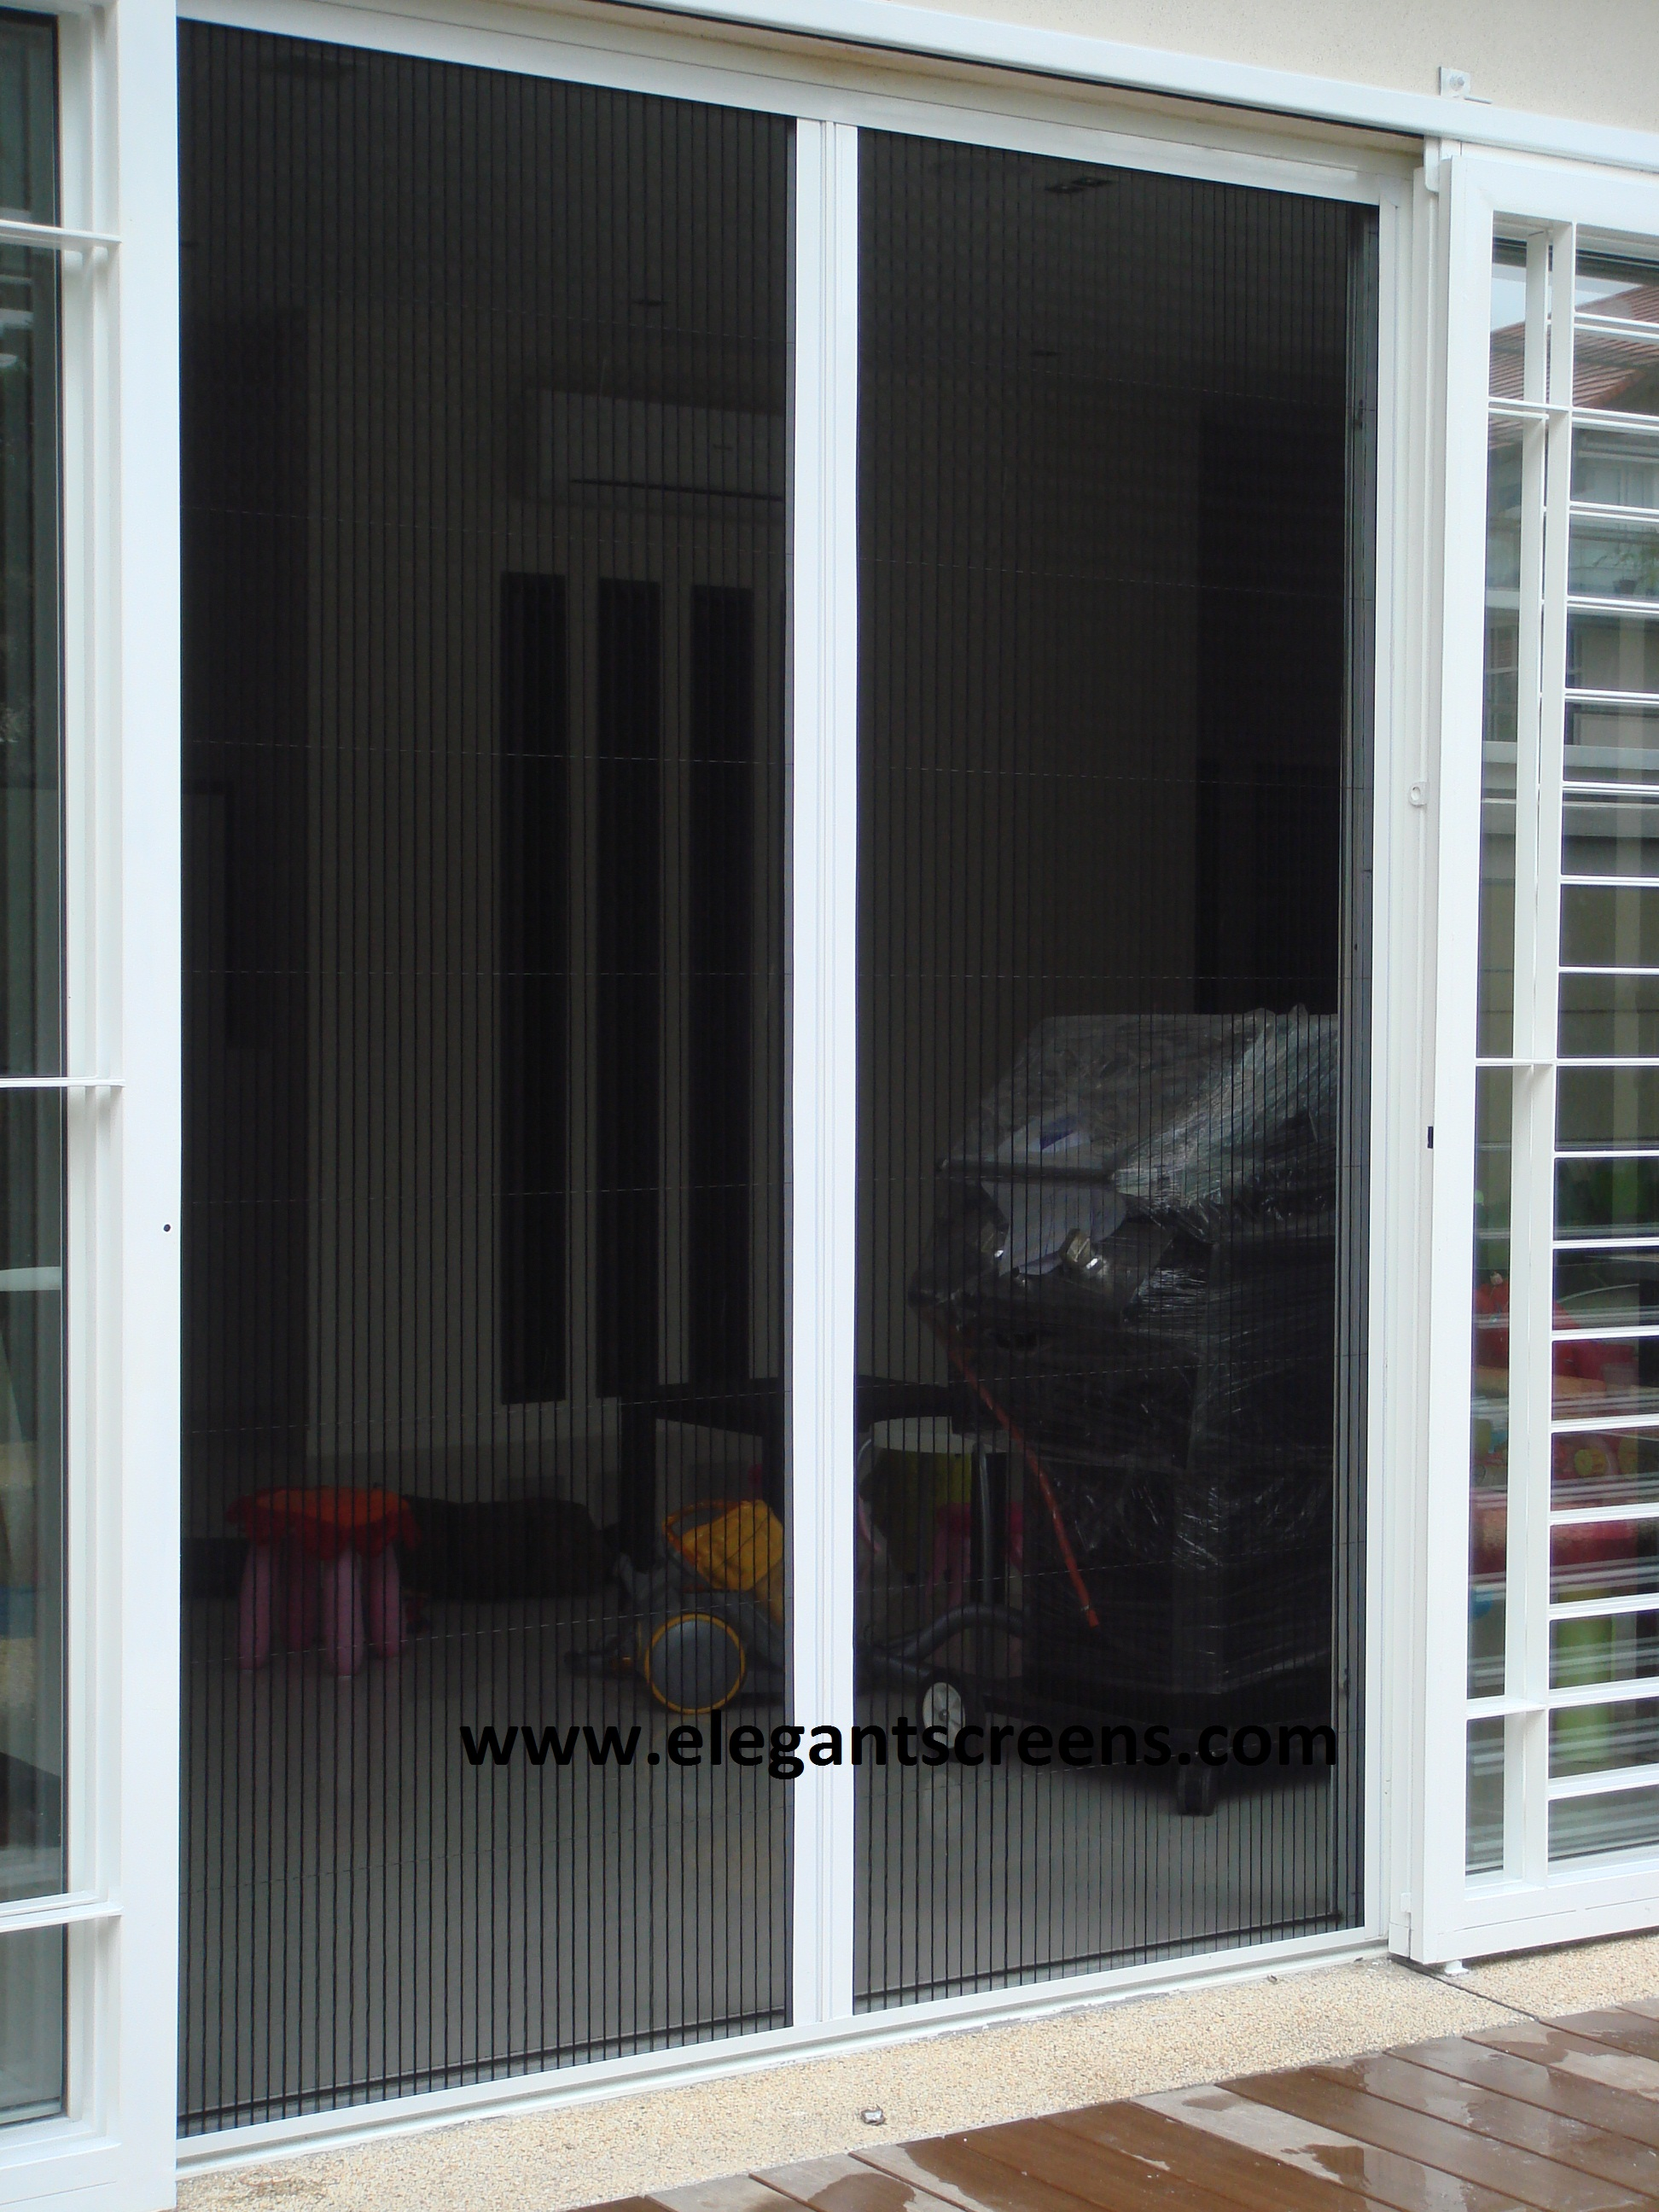 Elegant Screensmalaysia Mosquito Netretractable Insect Screens